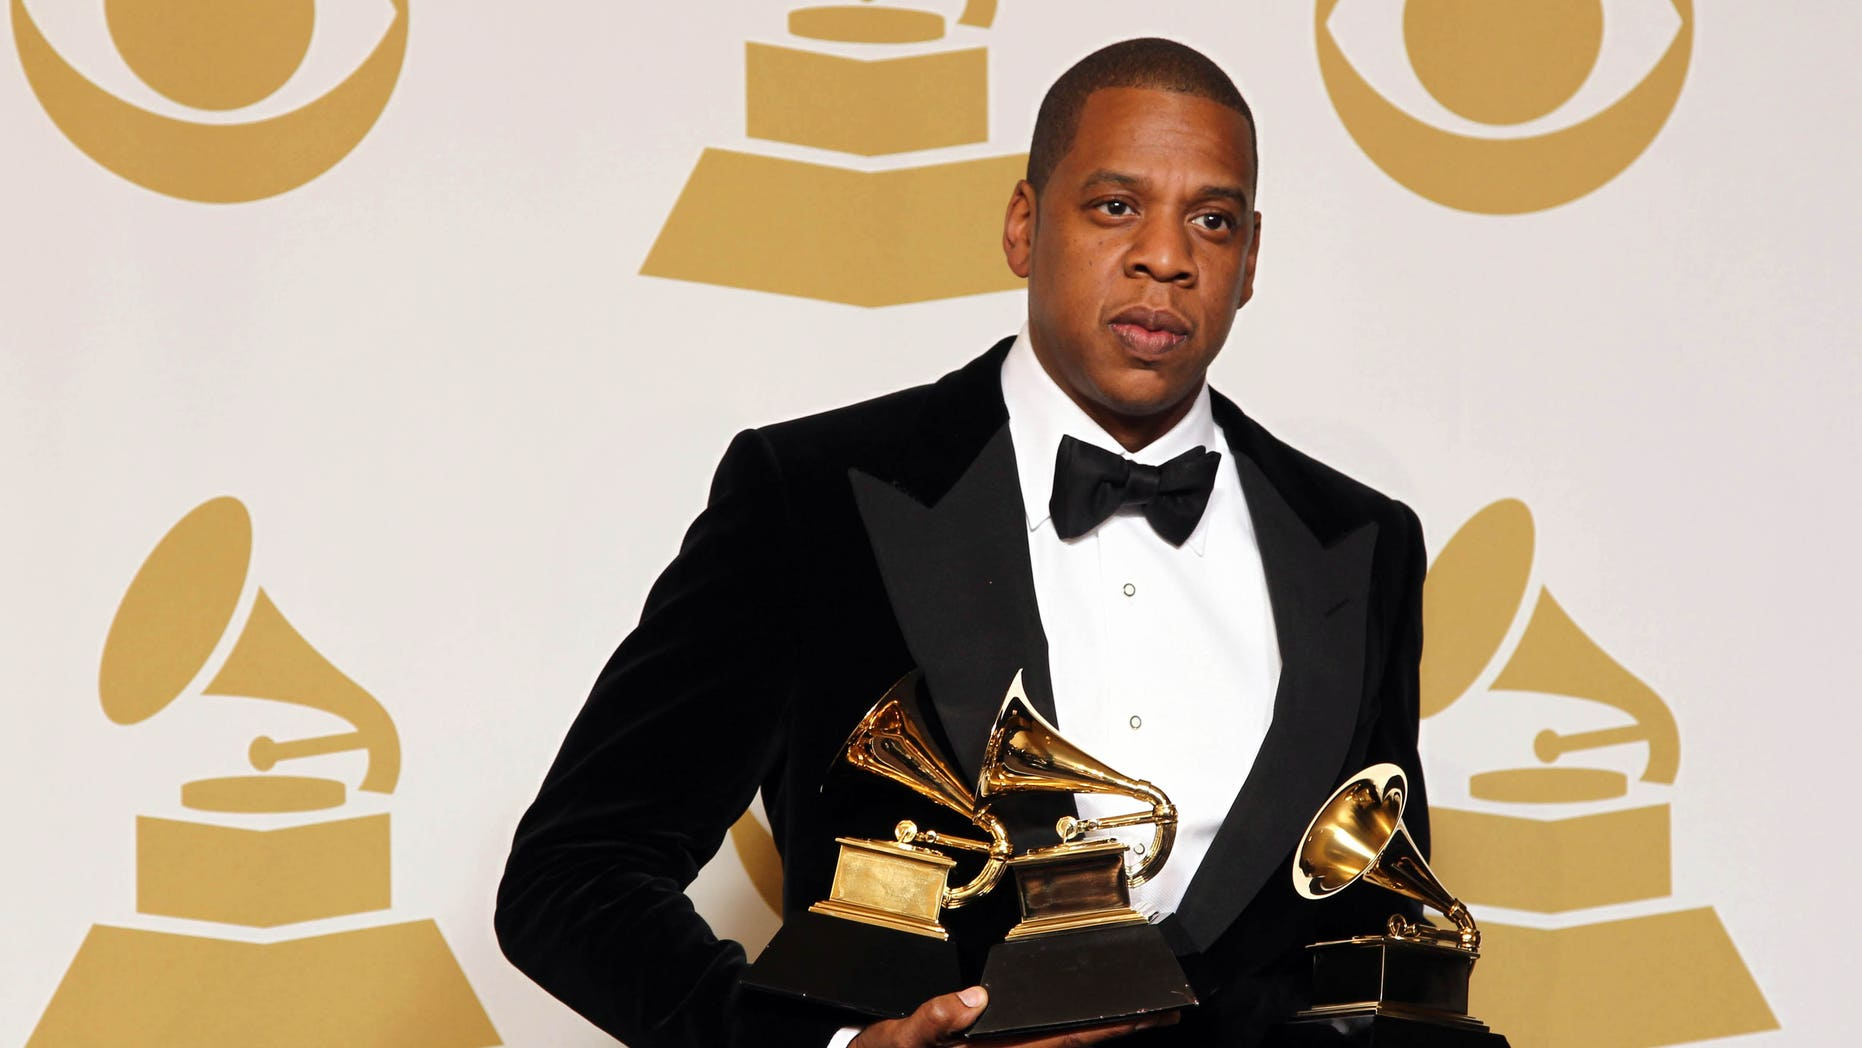 """Jay-Z poses backstage with the awards for best rap/sung collaboration for """"No Church in the Wild"""" and best rap performance for """"N****s in Paris"""" at the 55th annual Grammy Awards on Sunday, Feb. 10, 2013, in Los Angeles."""